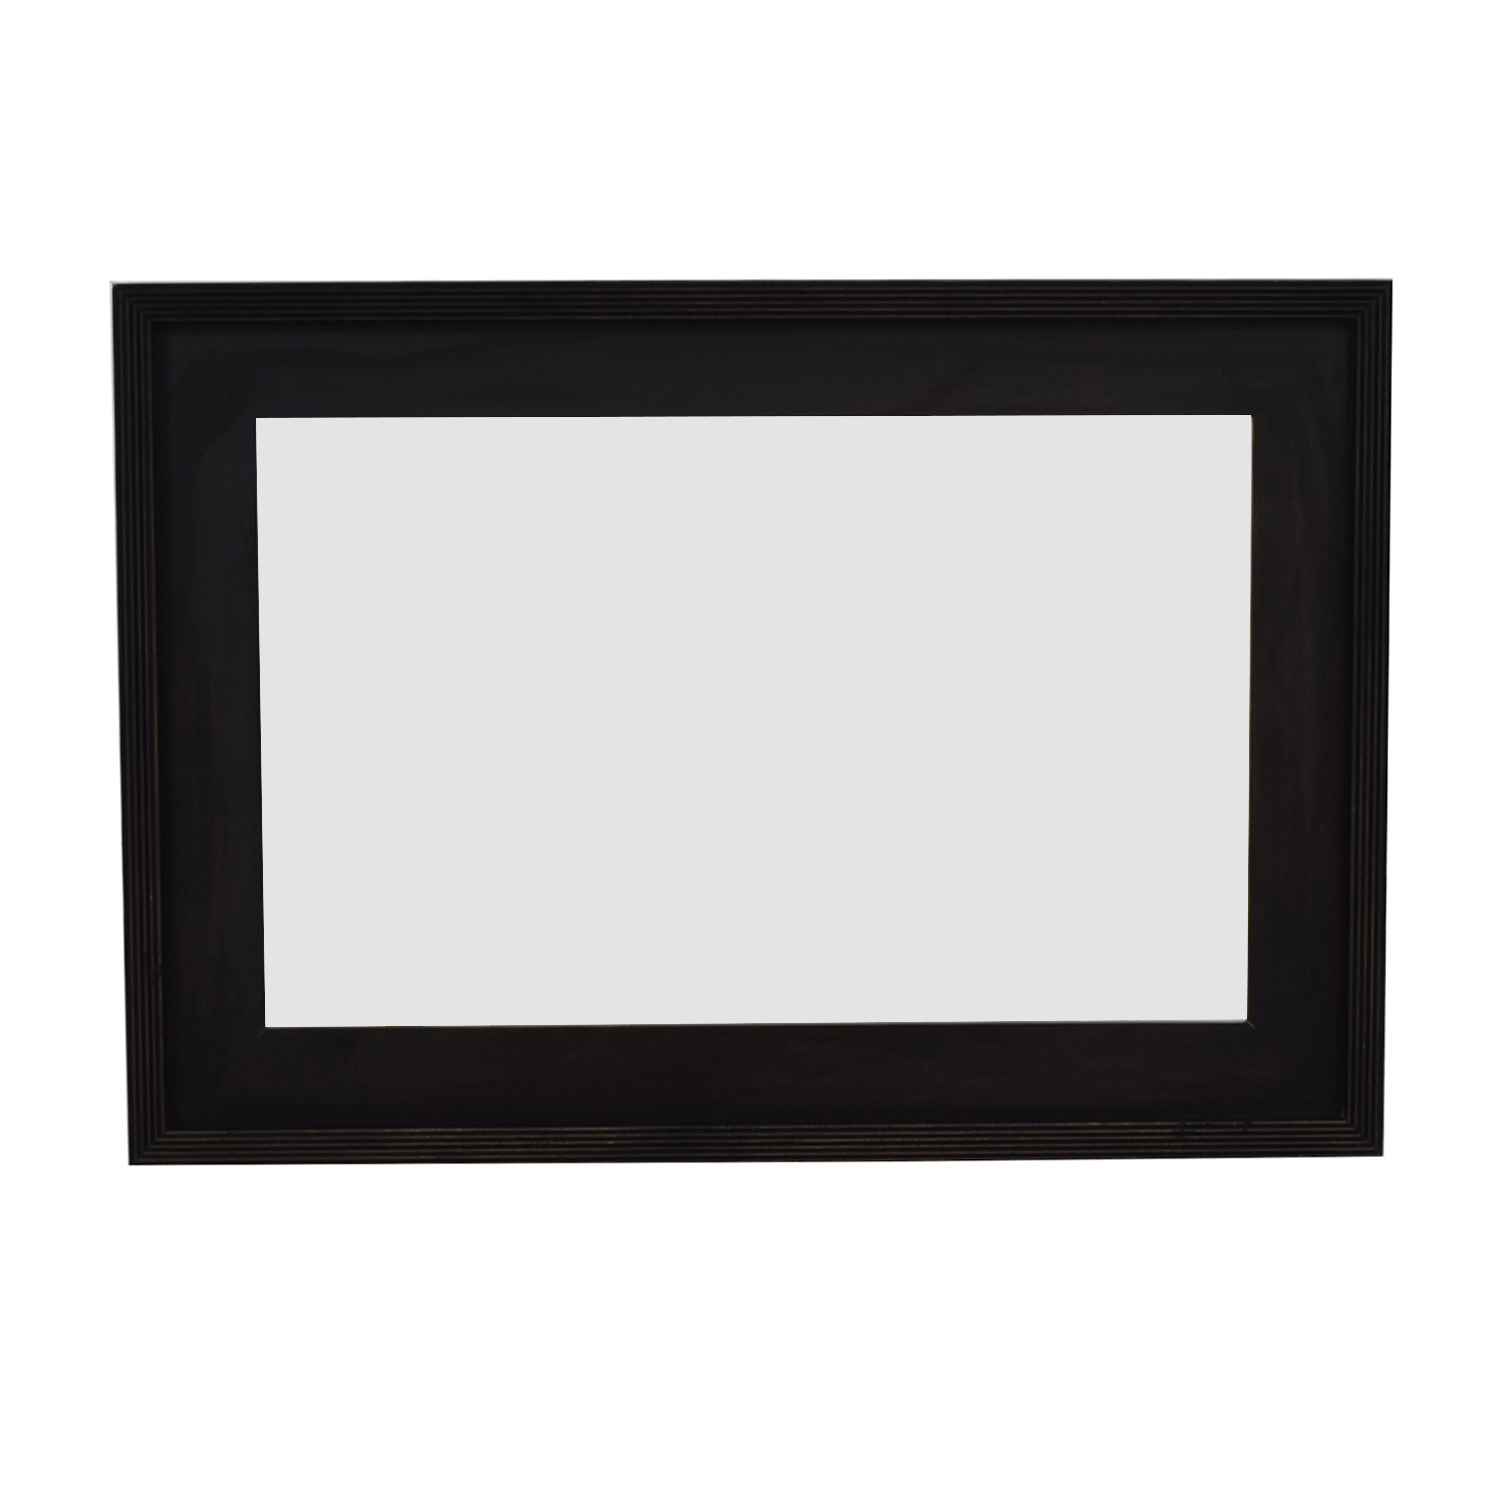 buy West Elm West Elm Black Framed Mirror online